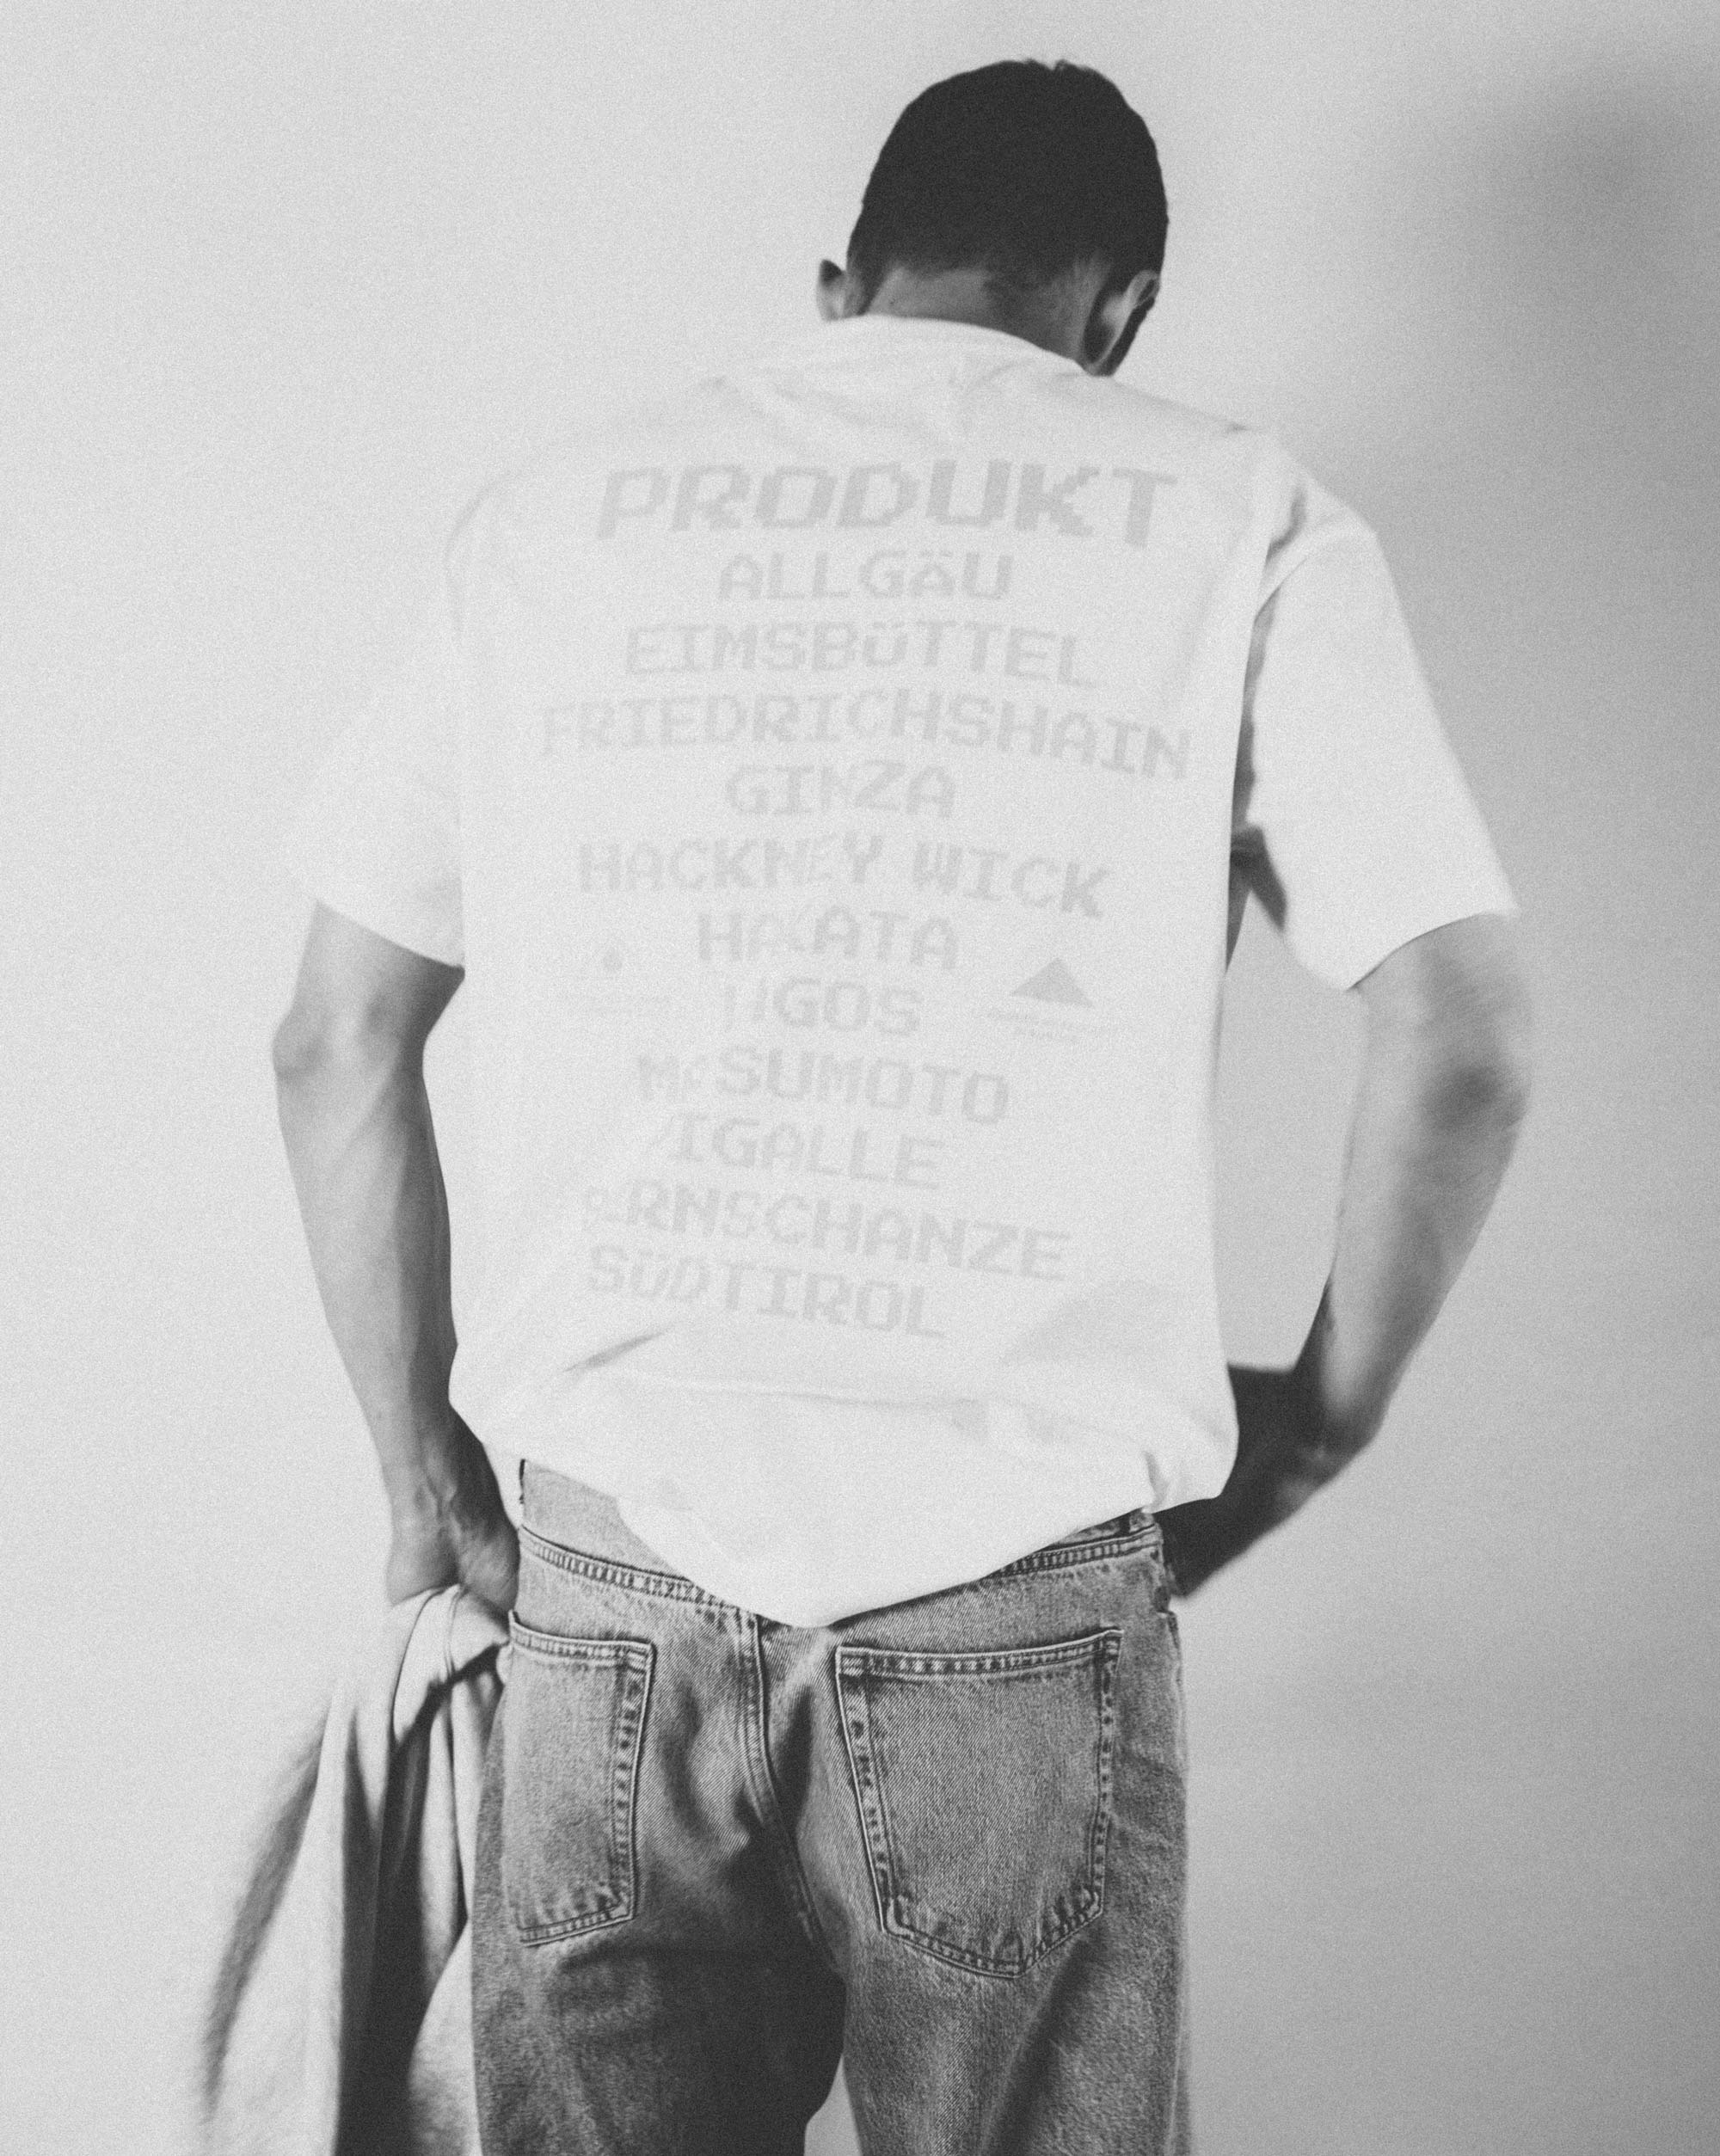 We envisiond 'PRODUKT' as a lifestyle brand with stylish products from multiple areas